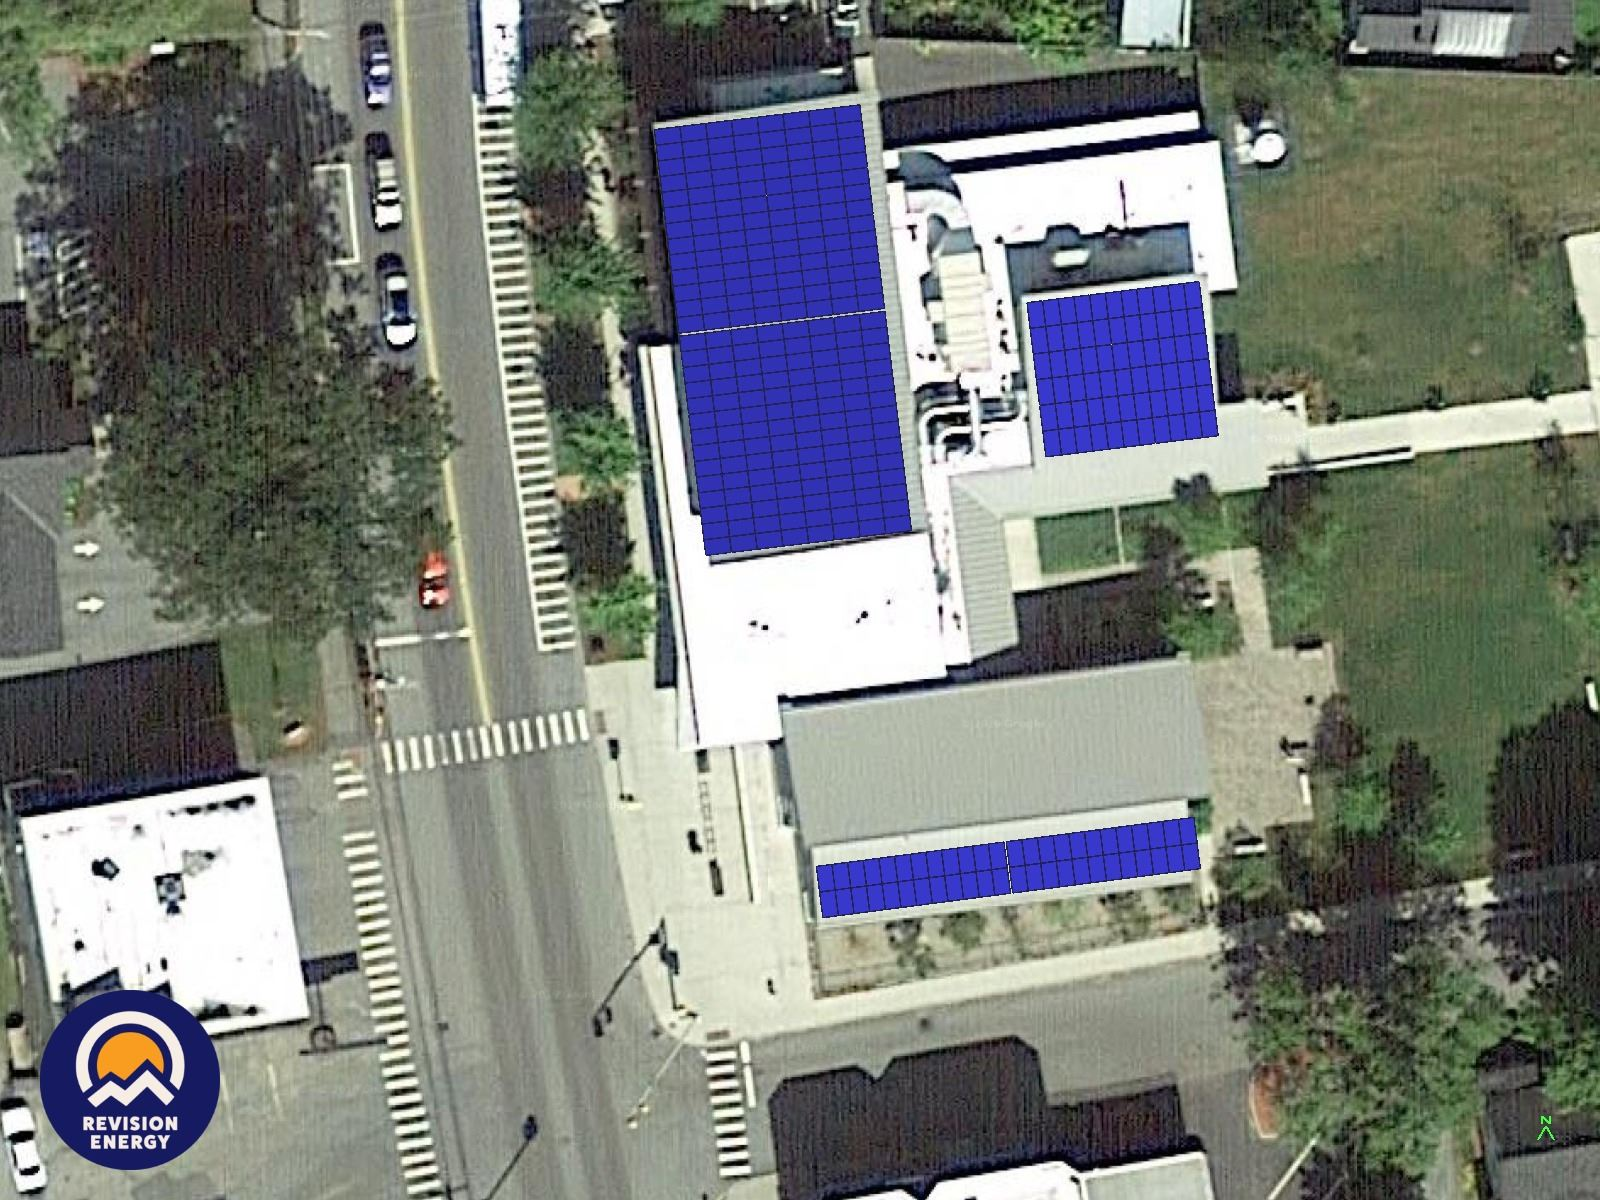 Kilton Public Library roof with solar array depiction